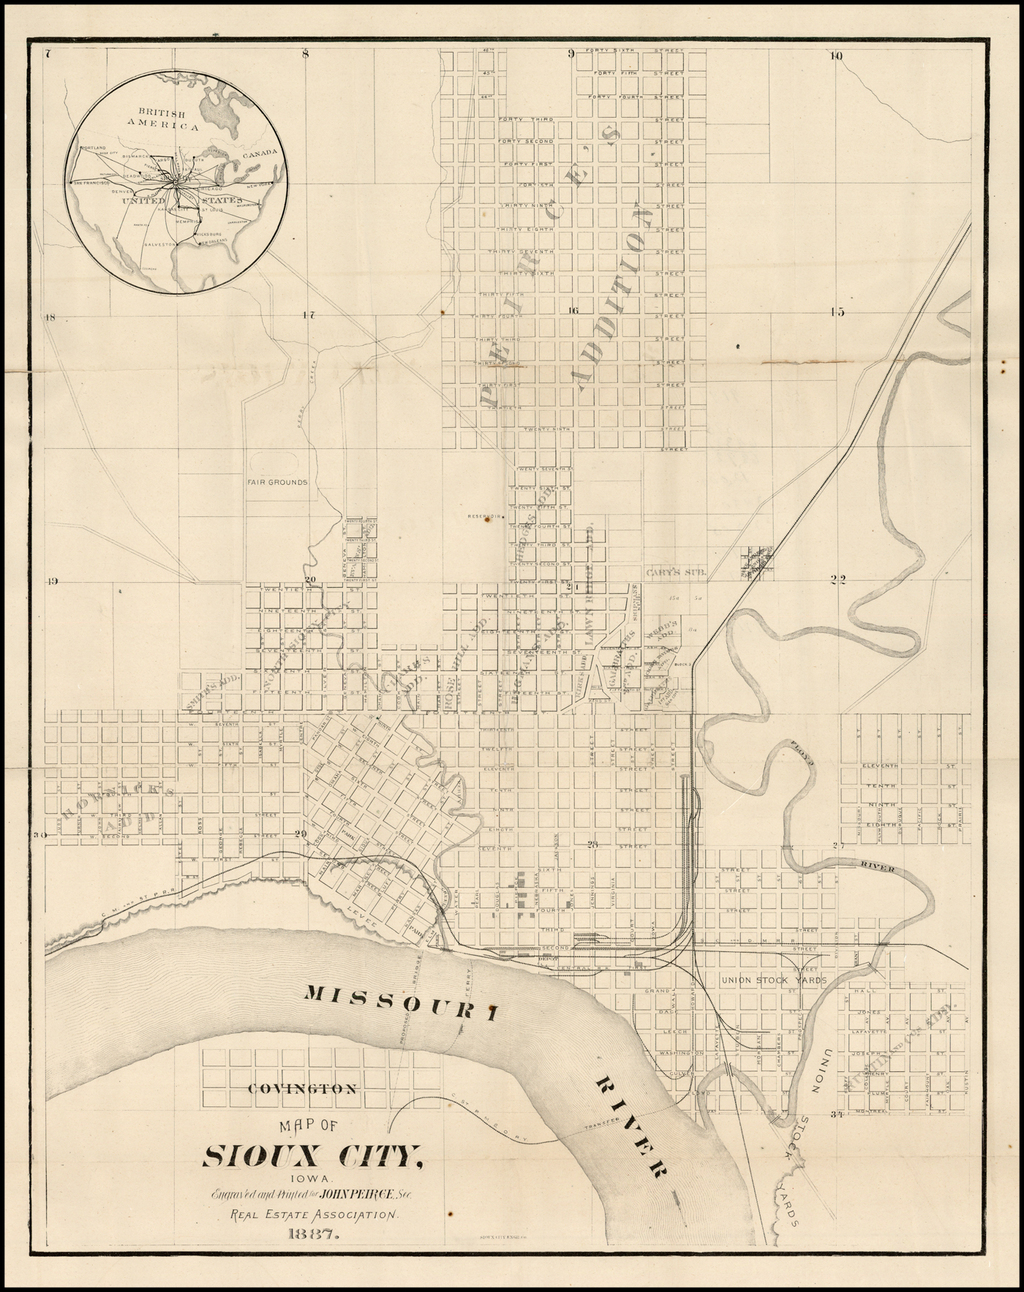 Map of Sioux City Iowa Engraved and Printed for John Peirce Sec. Real Estate Association 1887 By Sioux City Engraving Company